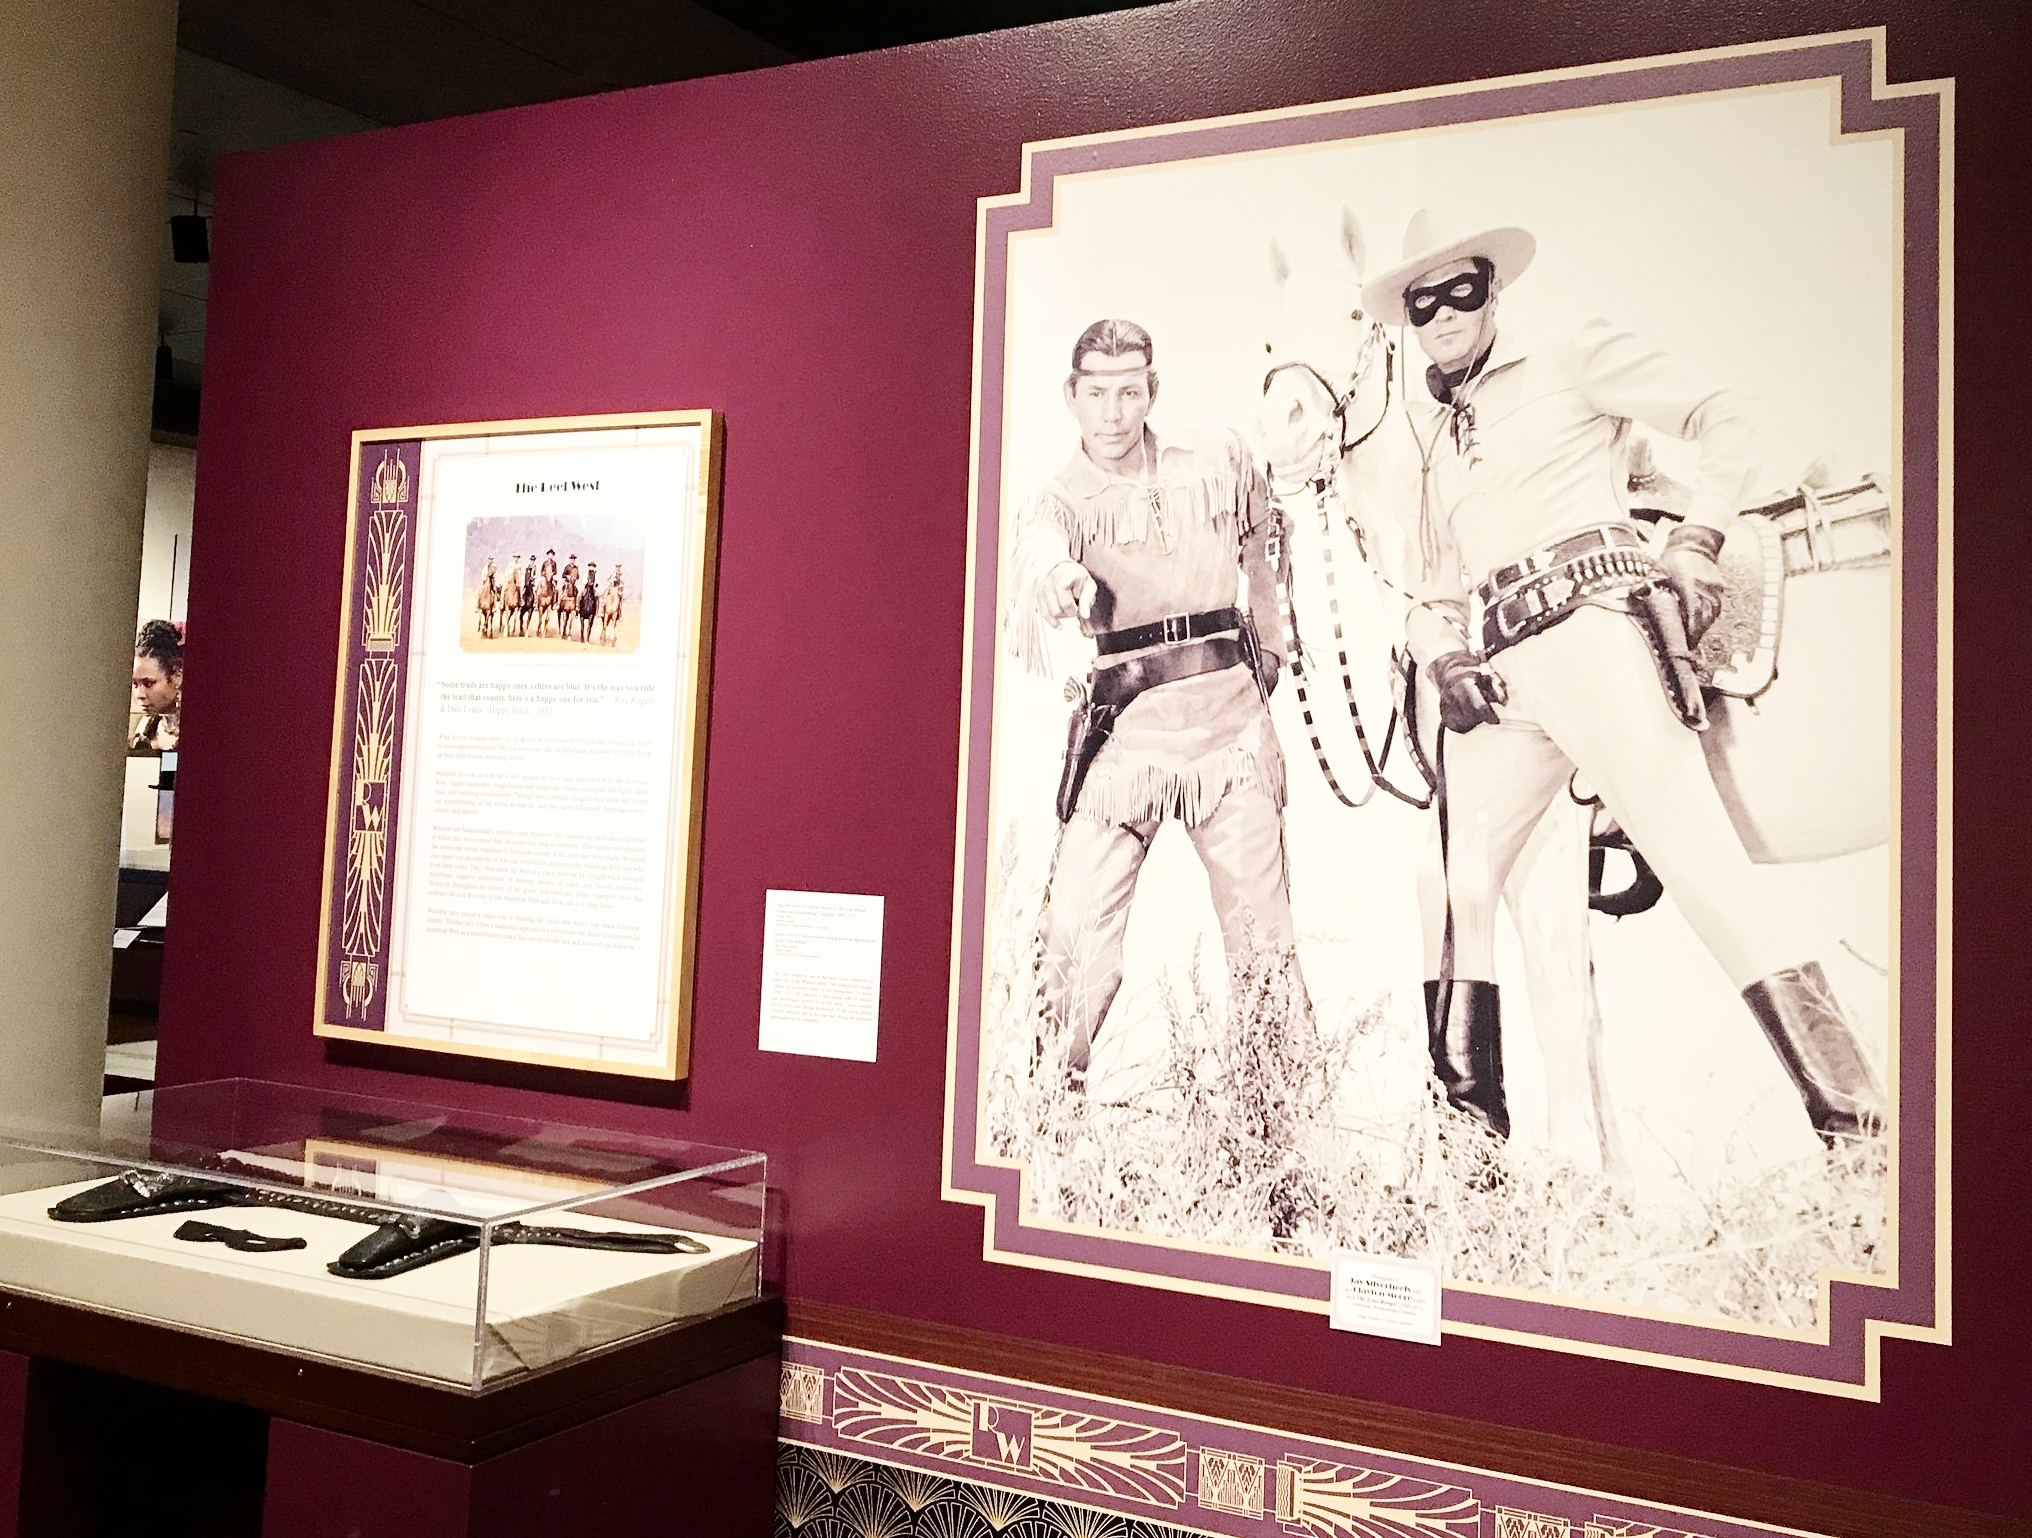 The Lone Ranger and Tonto loom large at the entrance to the Eiteljorg's Reel West exhibit, along with Clayton Moore's gunbelt and mask.